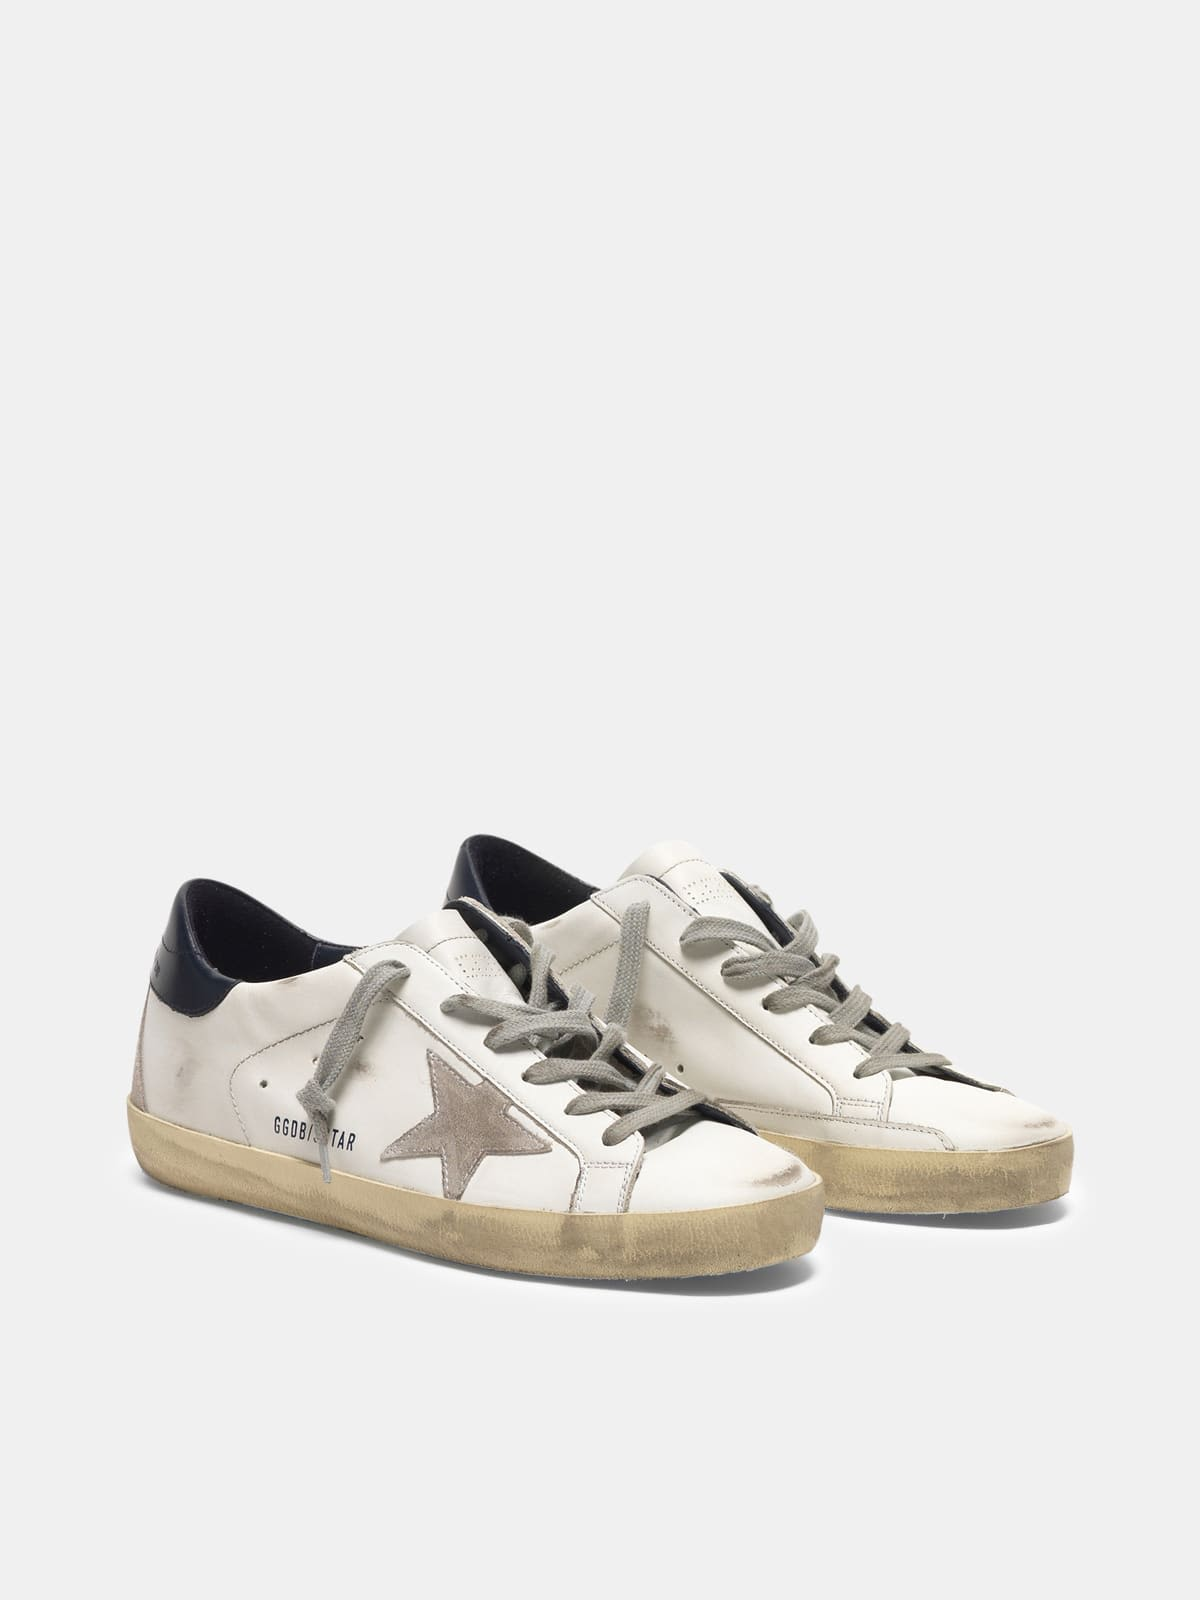 Star Super-Star sneakers in suede with blue heel tab